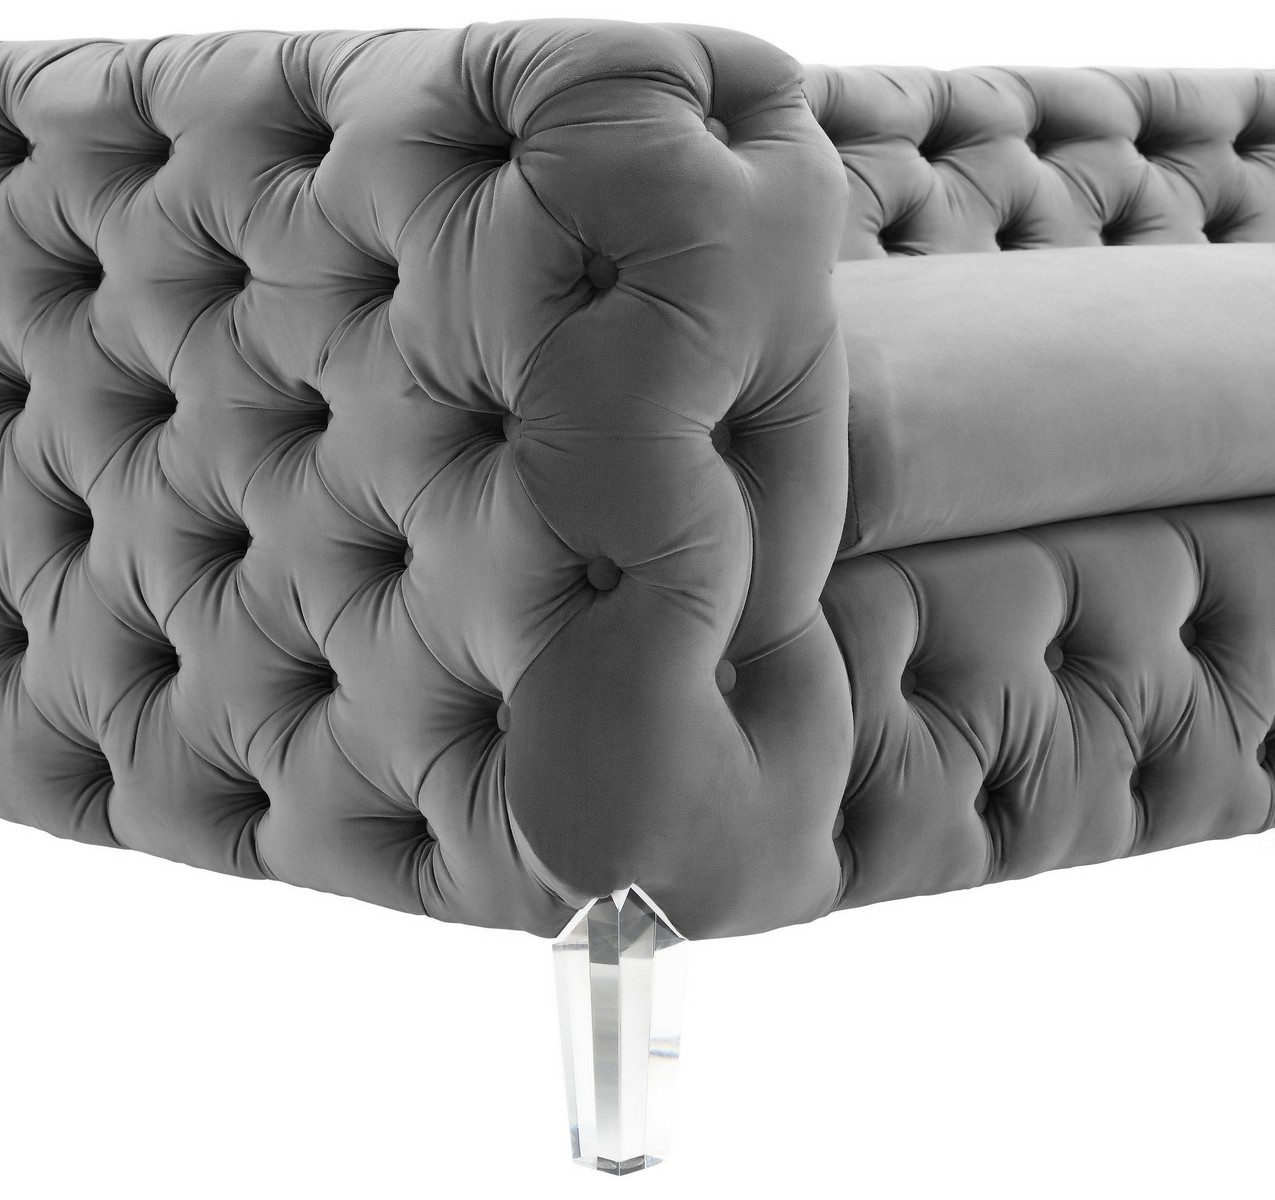 tov furniture celine grey velvet sofa - Tov Furniture